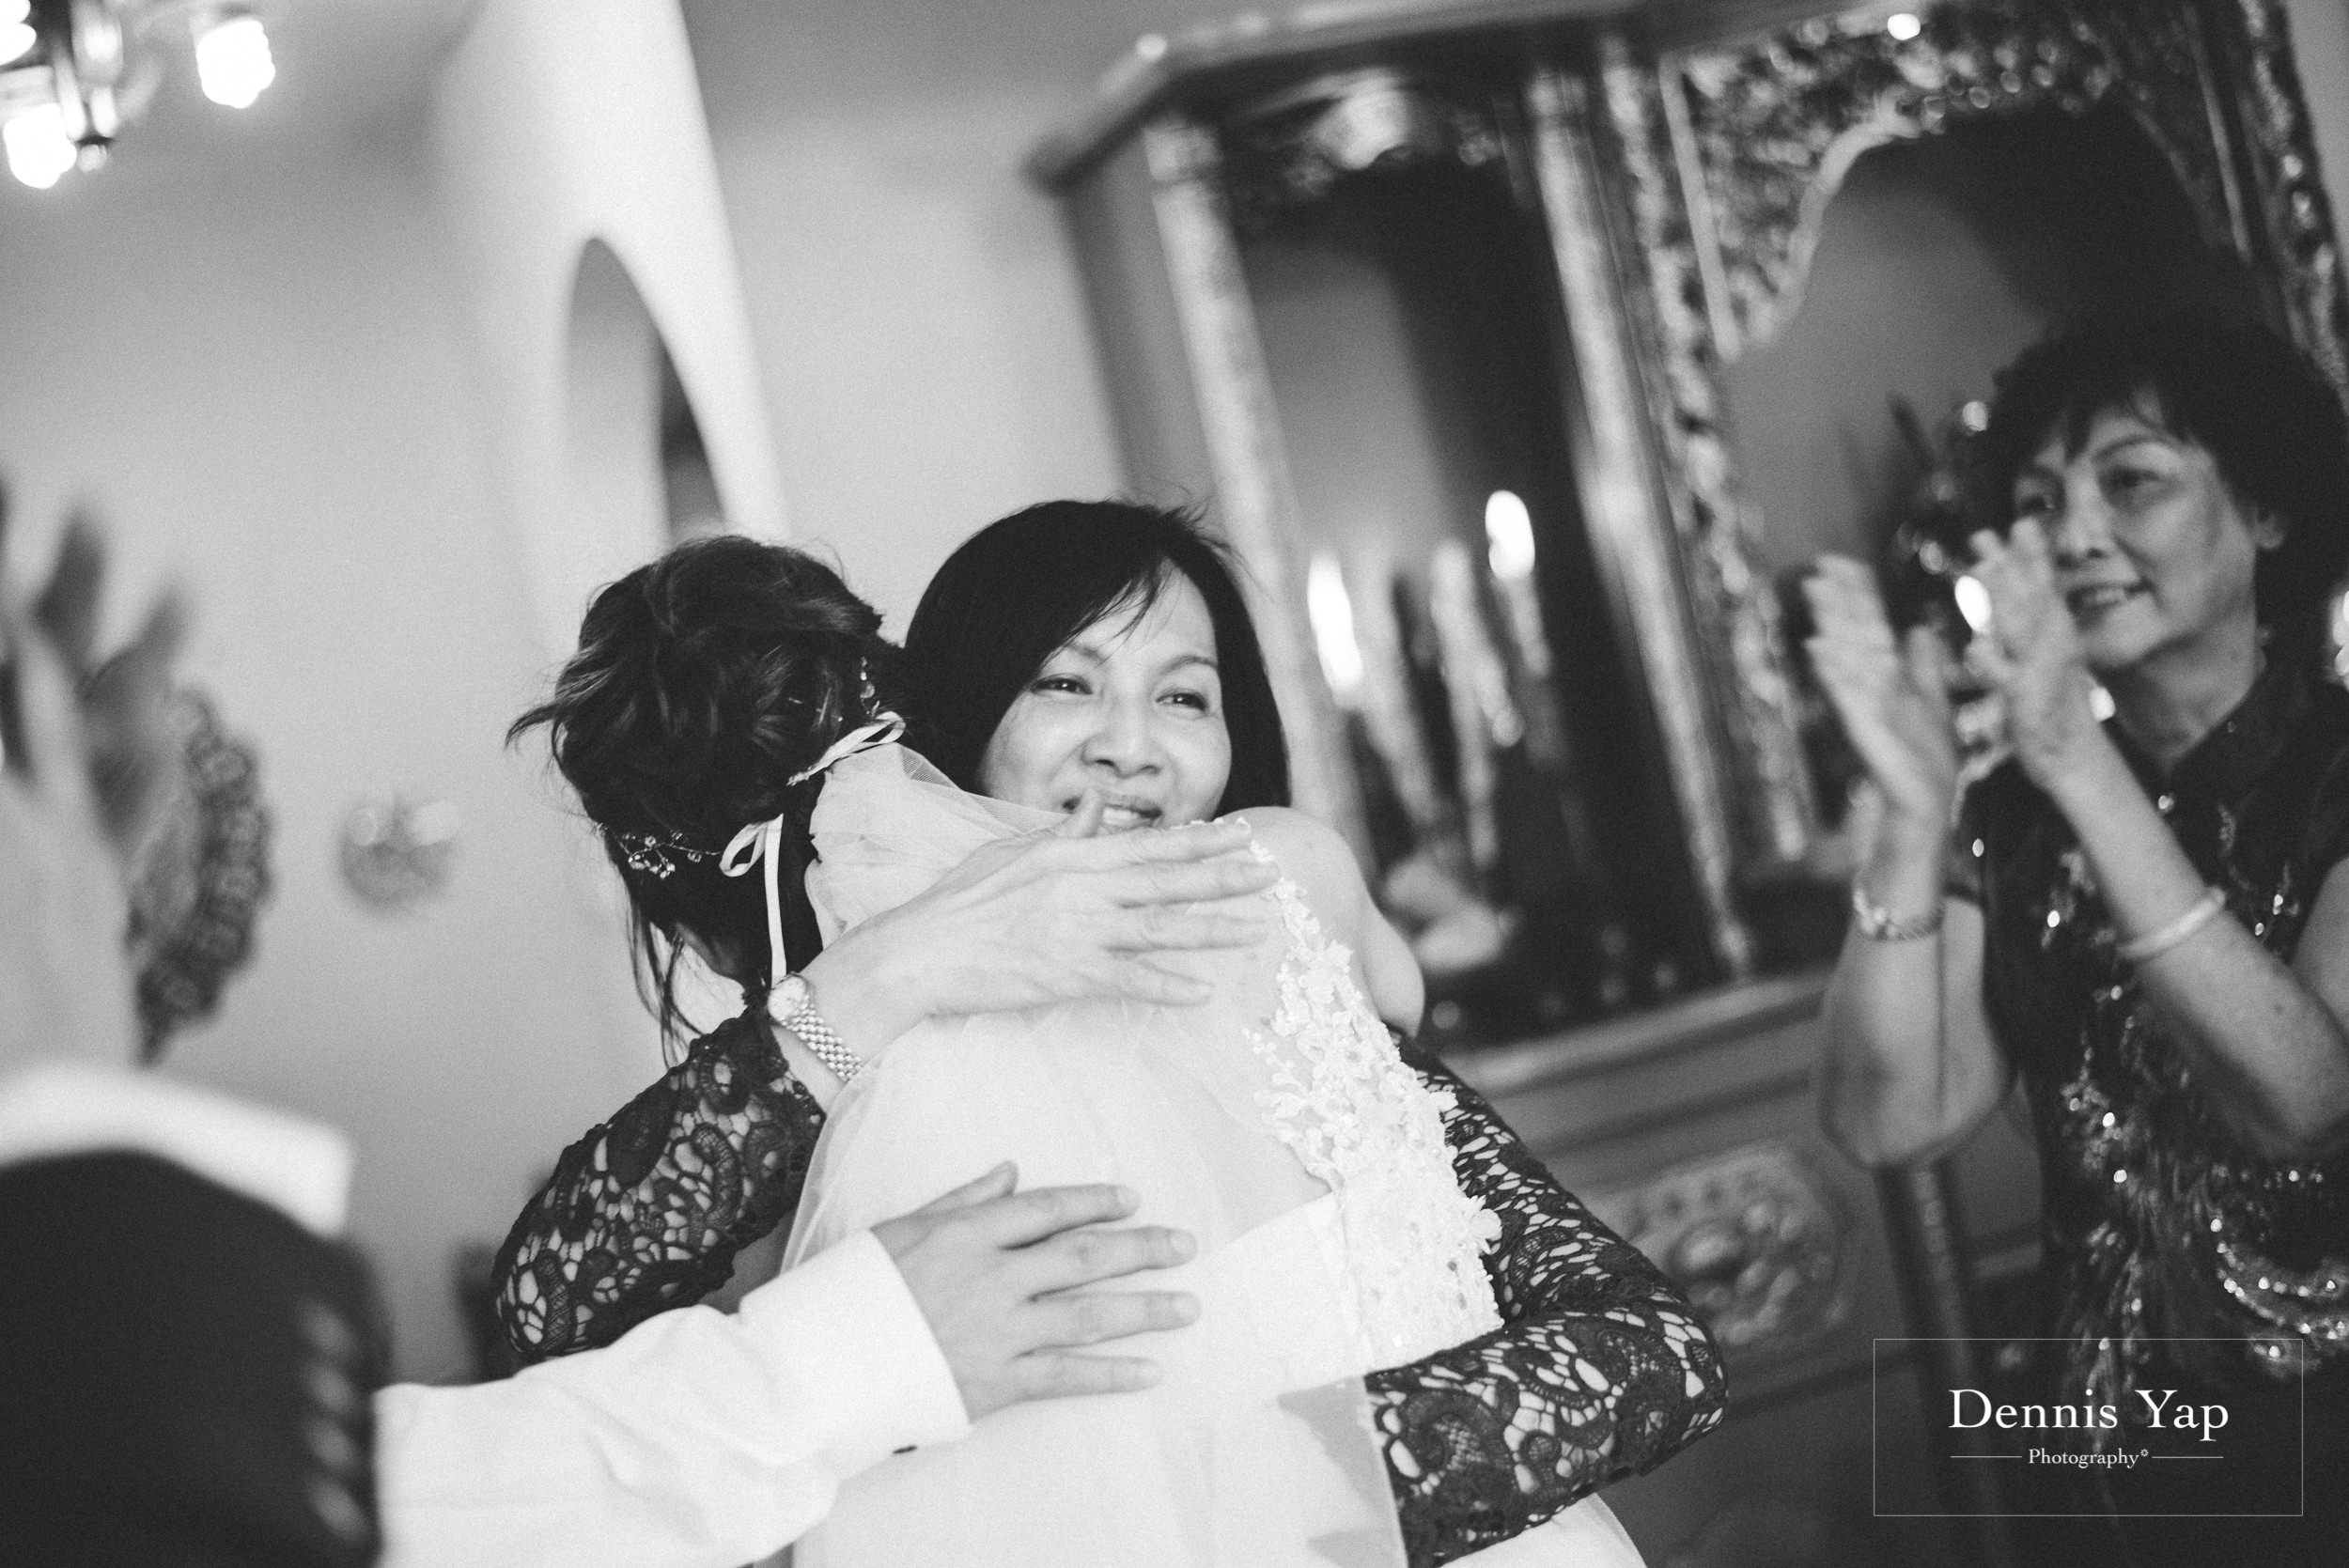 wee kee rachel wedding day setia alam convention center dennis yap malaysia top wedding photographer-10.jpg